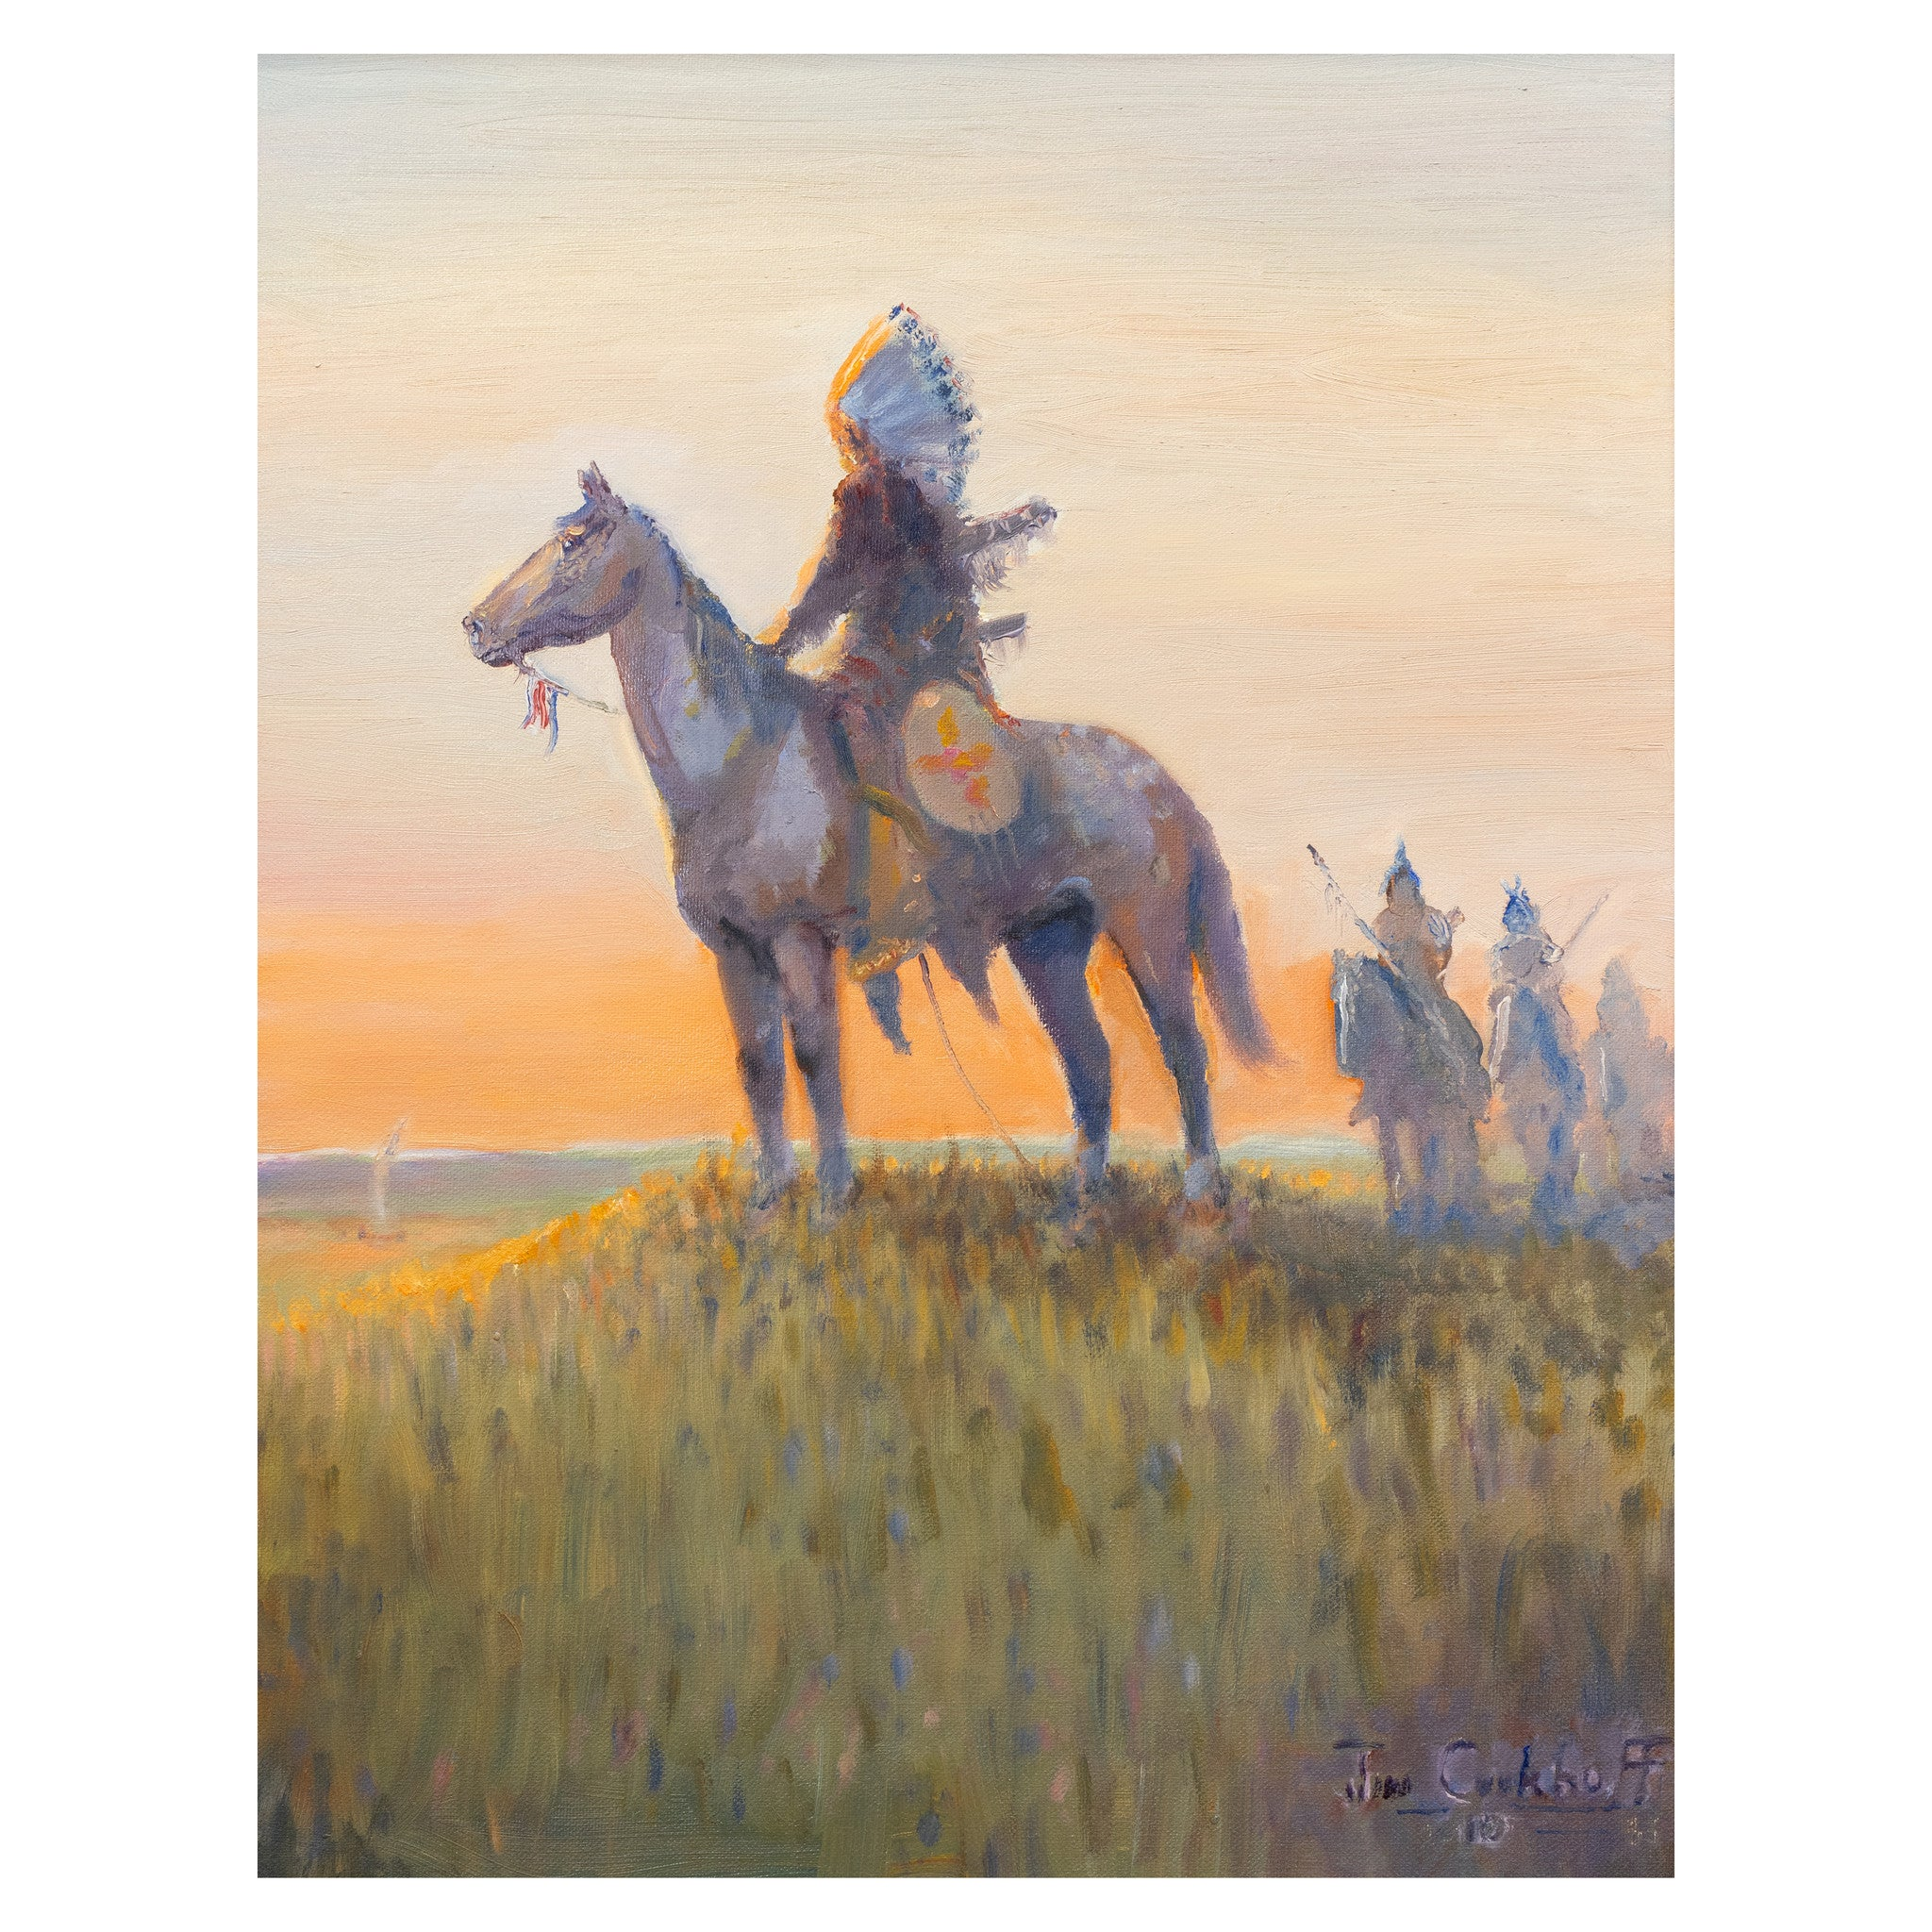 Appoloosa Stallion by Jim Carkhuff all paintings, fine art: painting: native american, jim carkhuff, paintings-native